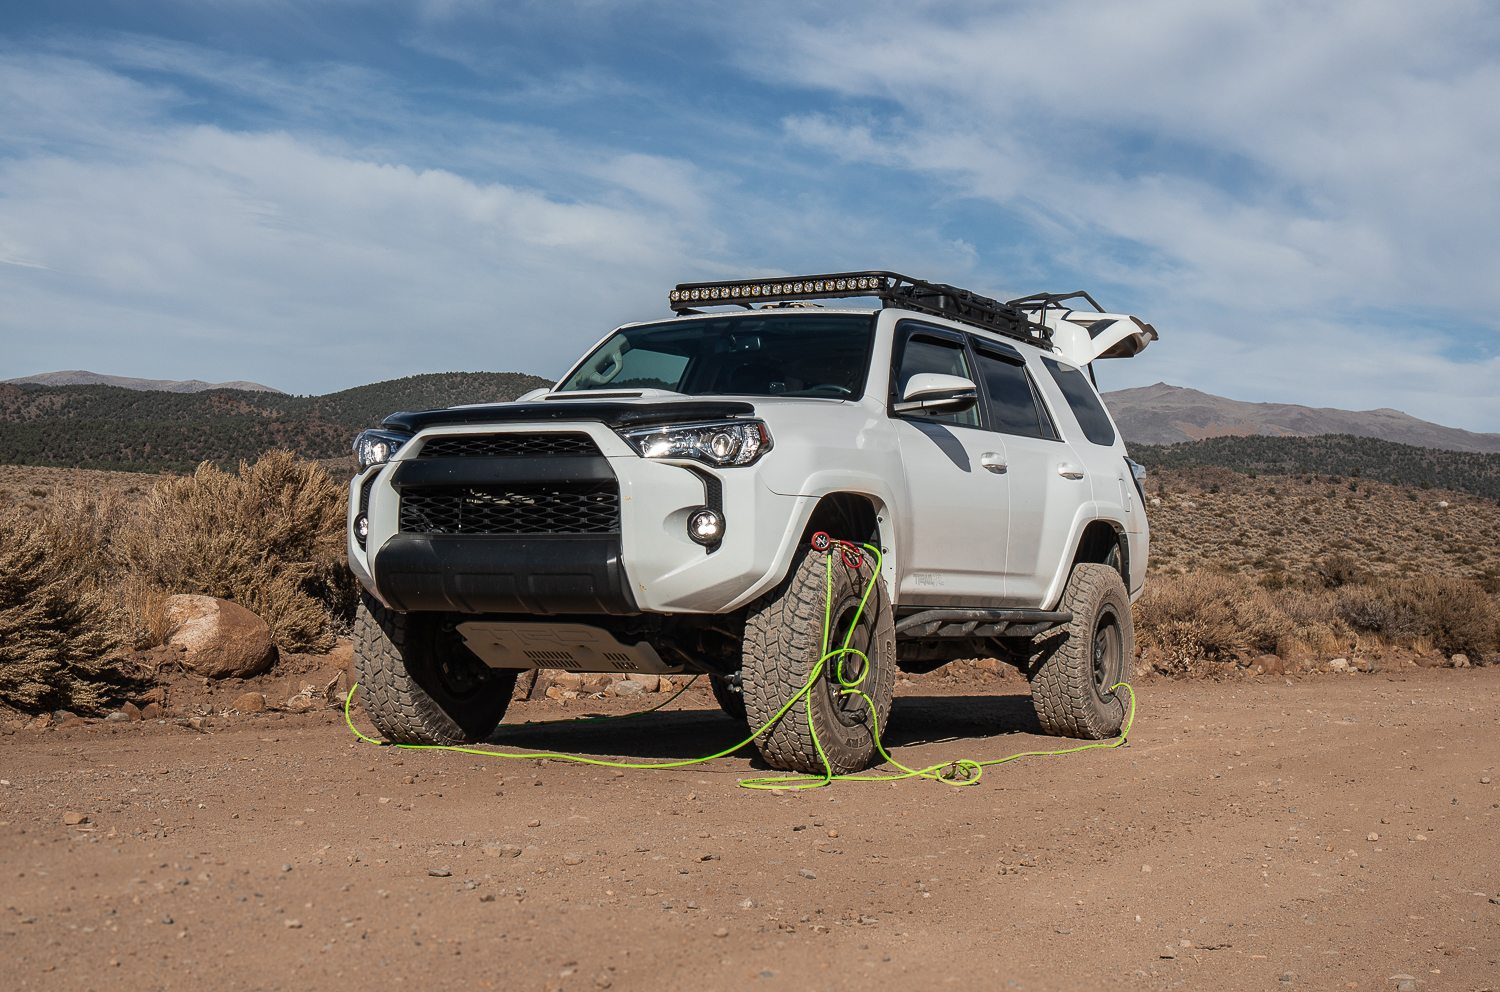 4runner off road accessories top 10 4runner off road mods 4runner off road accessories top 10